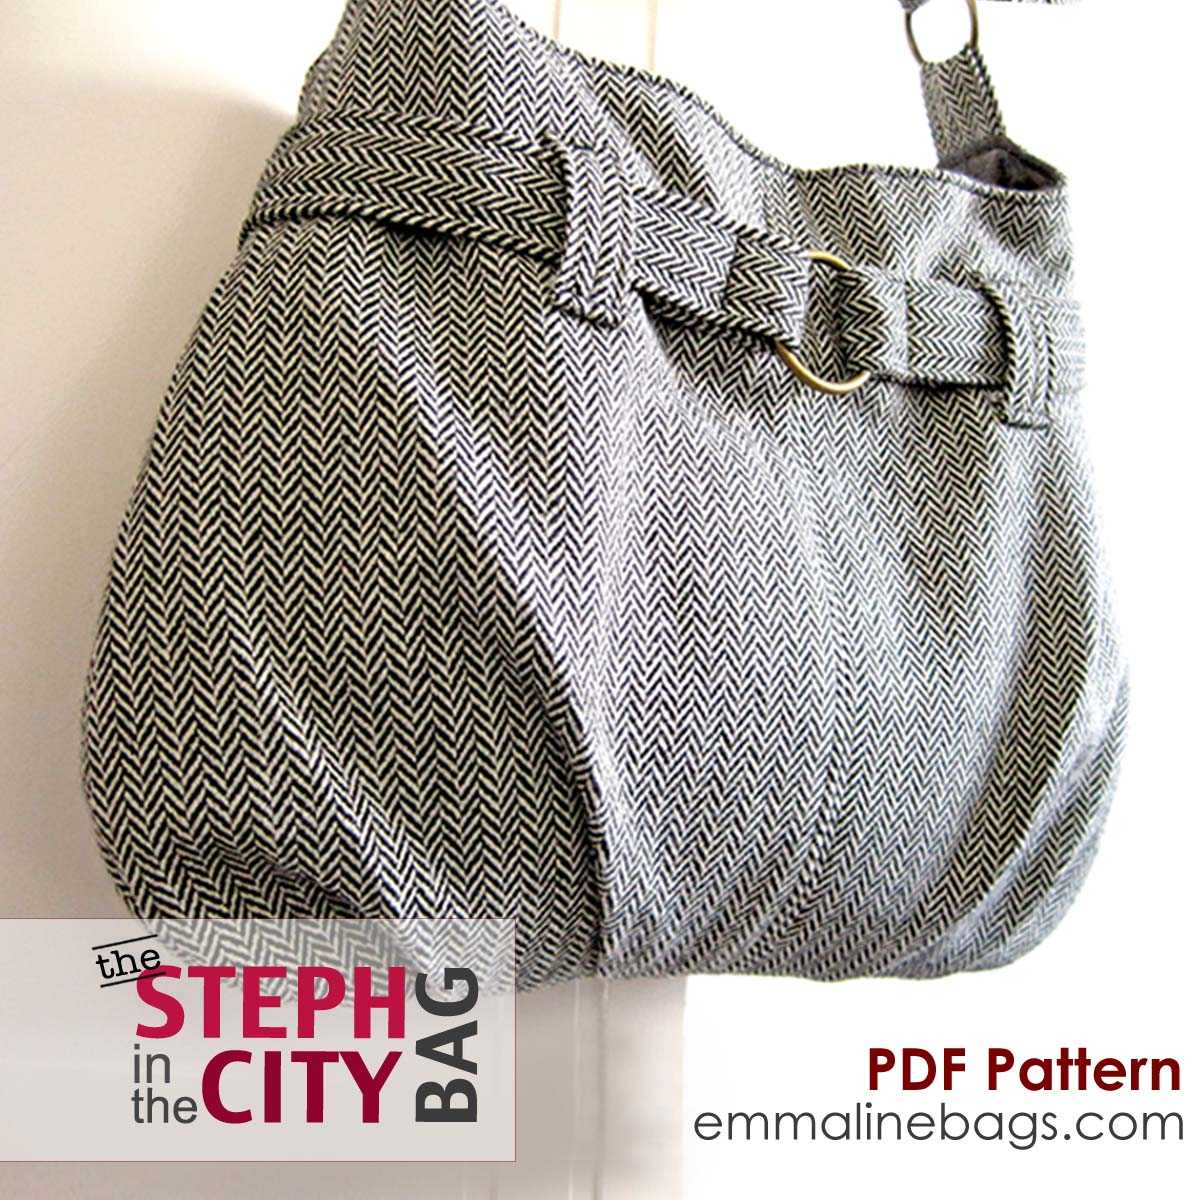 Bags: Sewing Patterns and Purse Supplies: A New Sewing Pattern ...